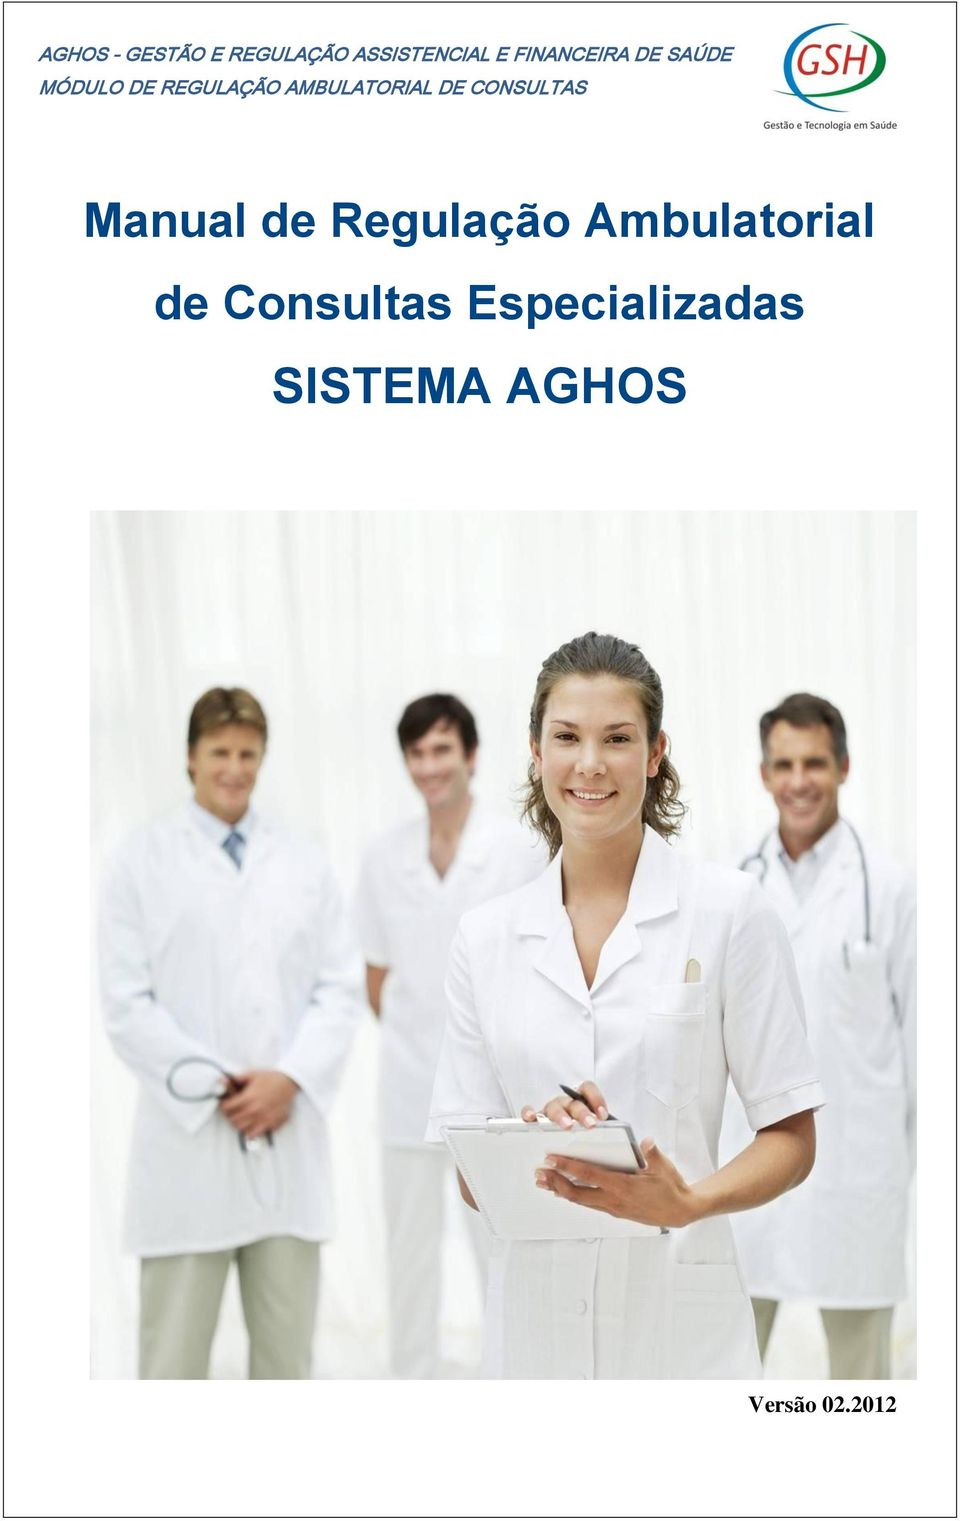 ESPECIALIZADAS ESPECIALIZADAS Manual de Regulação